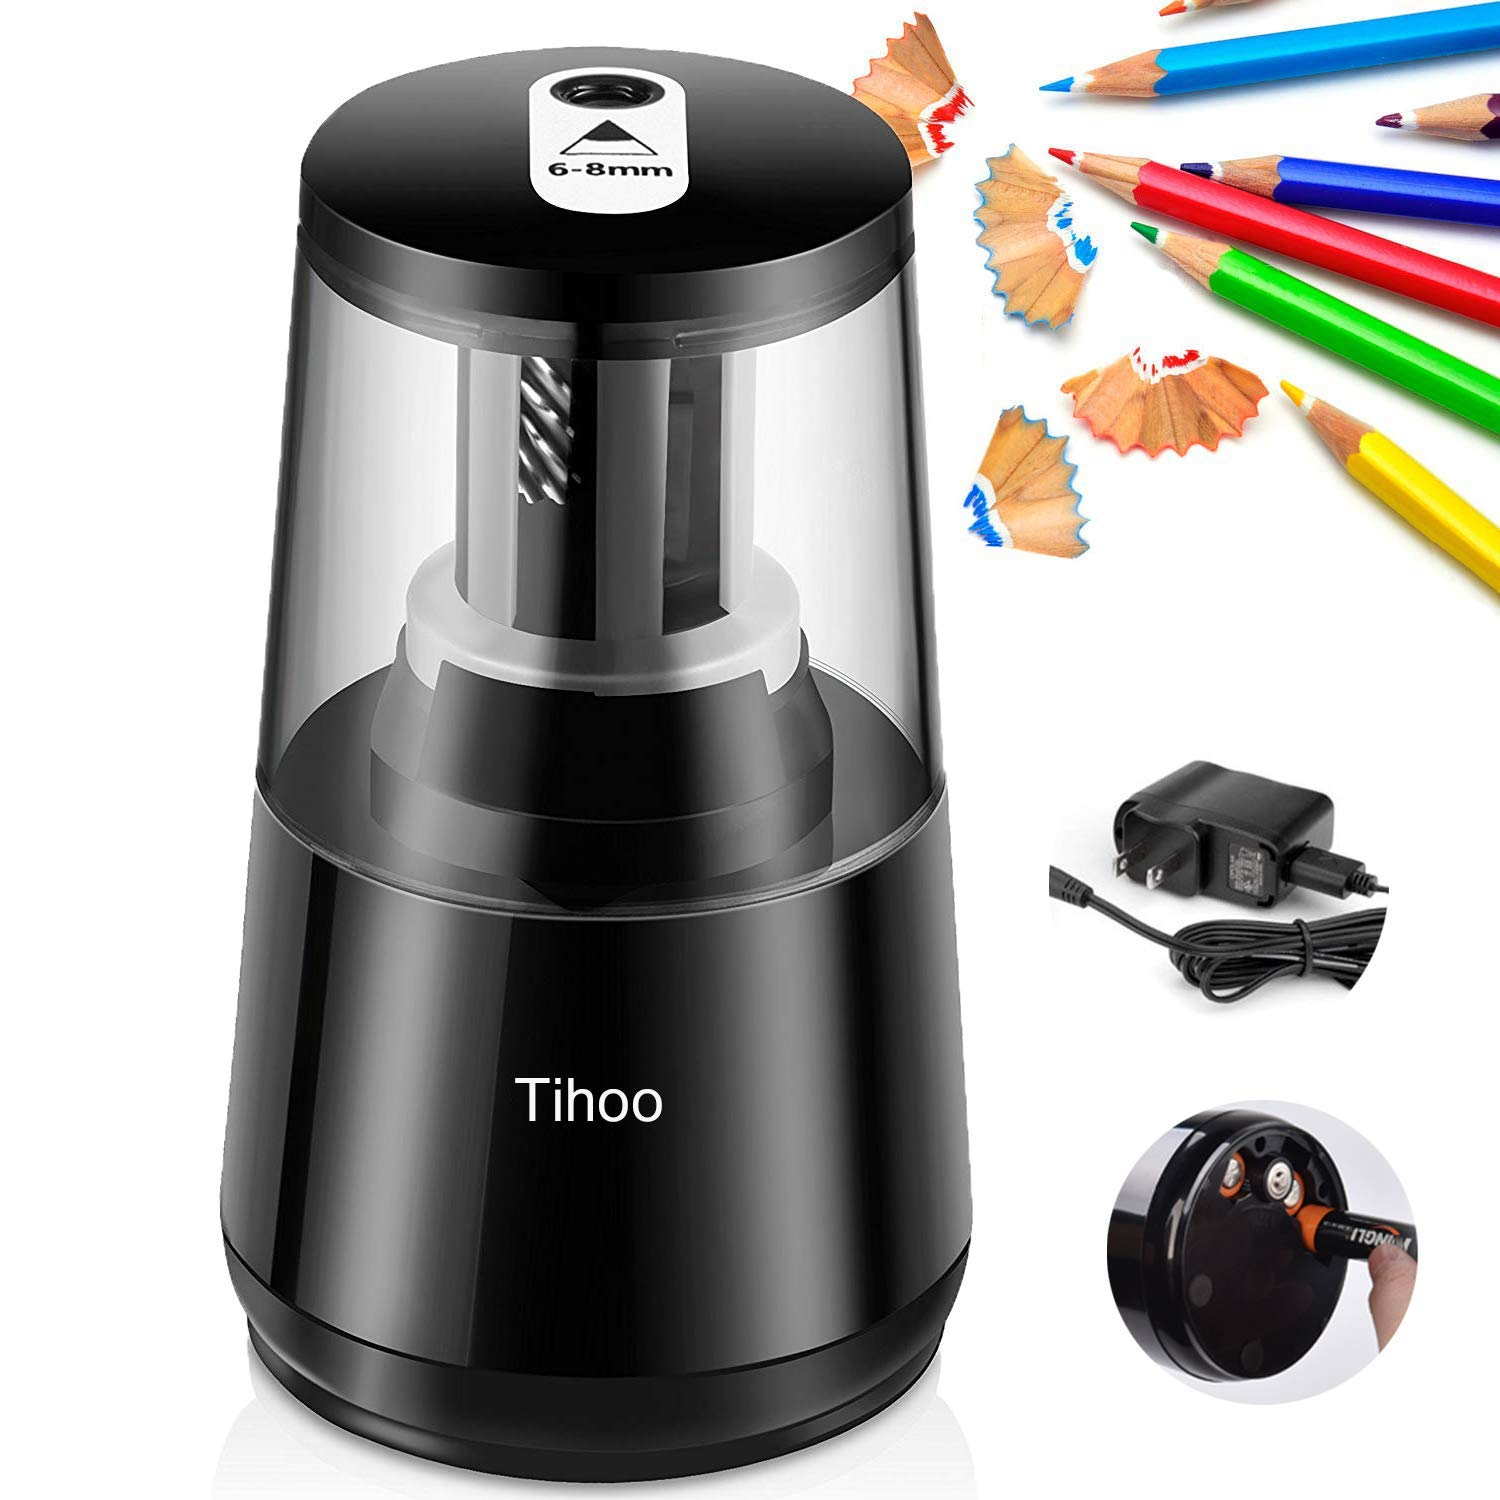 Automatic USB Portable Electric Pencil Sharpener, Spiral Steel Blade for Quick Grinding Auto-Stop Feature for Home Classroom & Office USB&Battery Operated(Black)